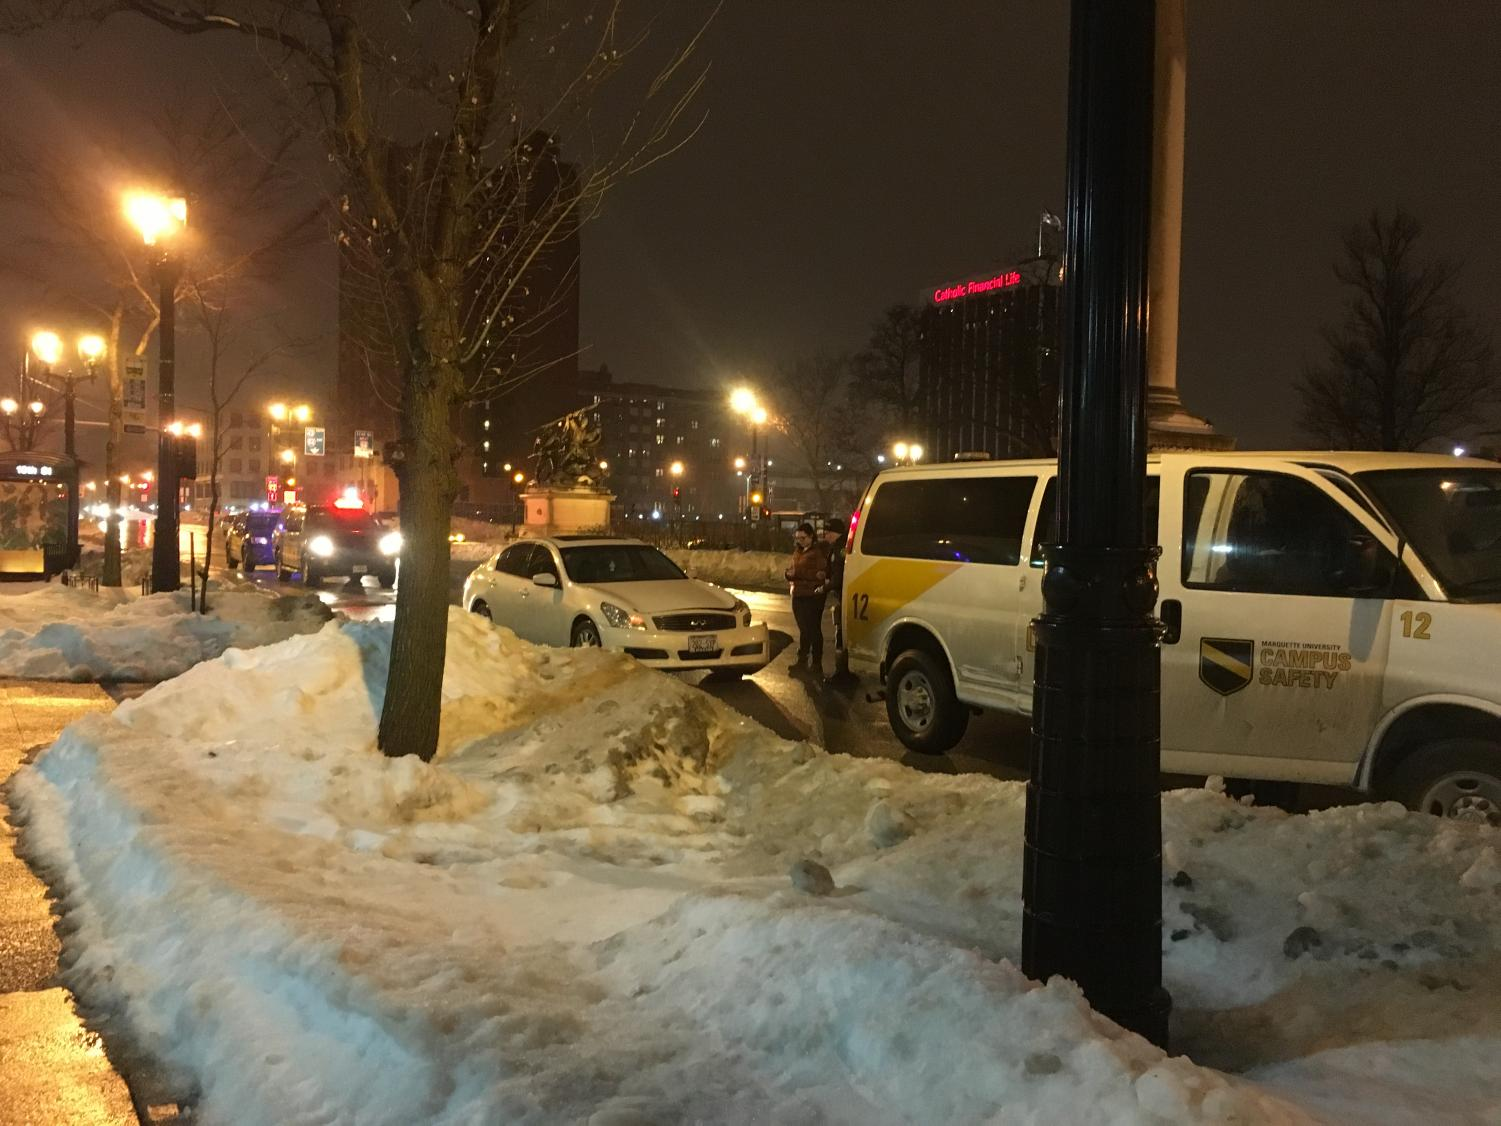 The car crash was in front of the Straz Tower residence hall.